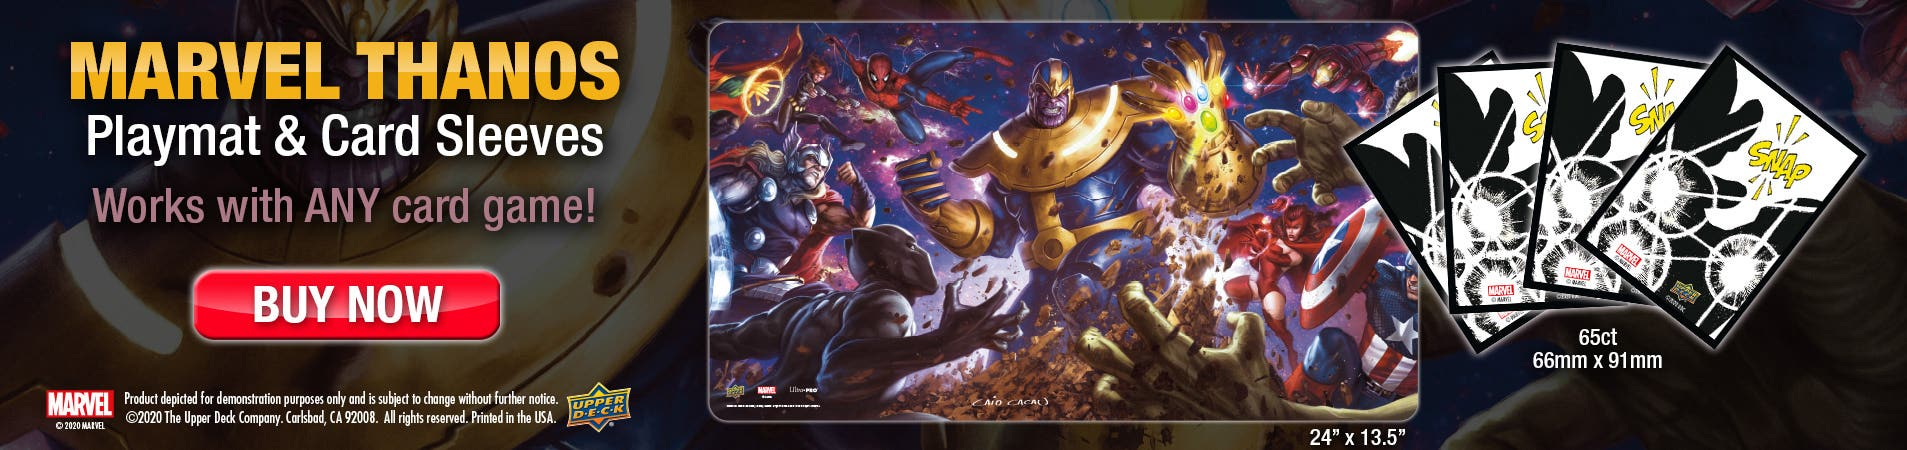 Marvel Thanos Playmat now available Use with ANY game!